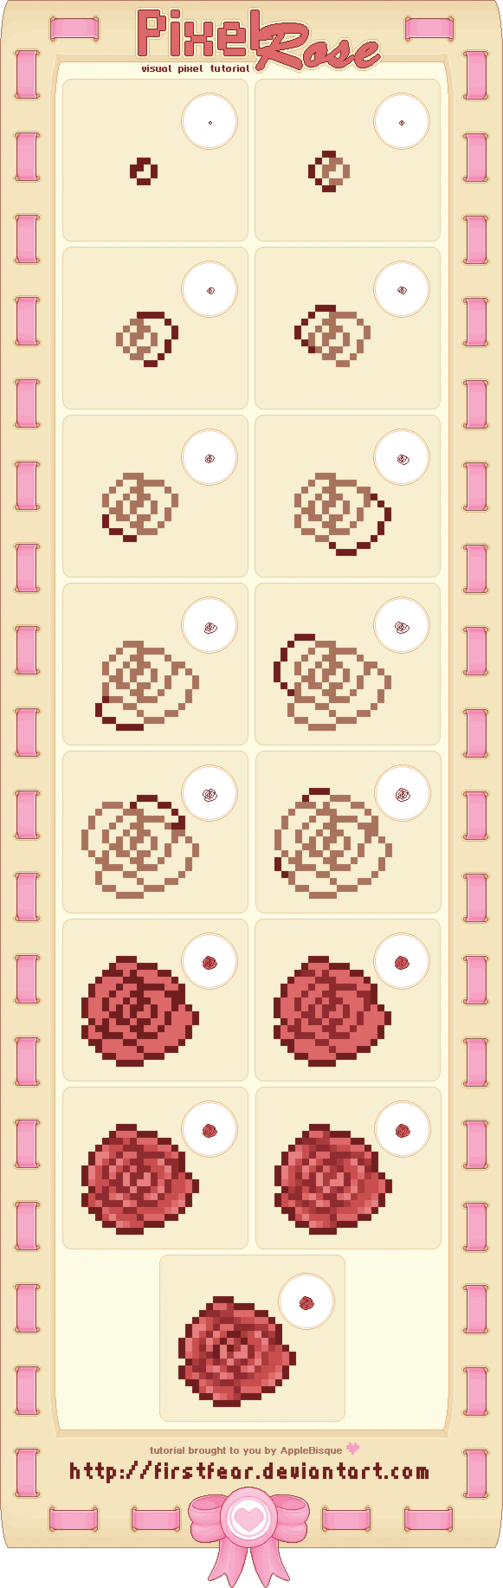 Tutorial Pixel Rose By Firstfear Animal Crossing Qr